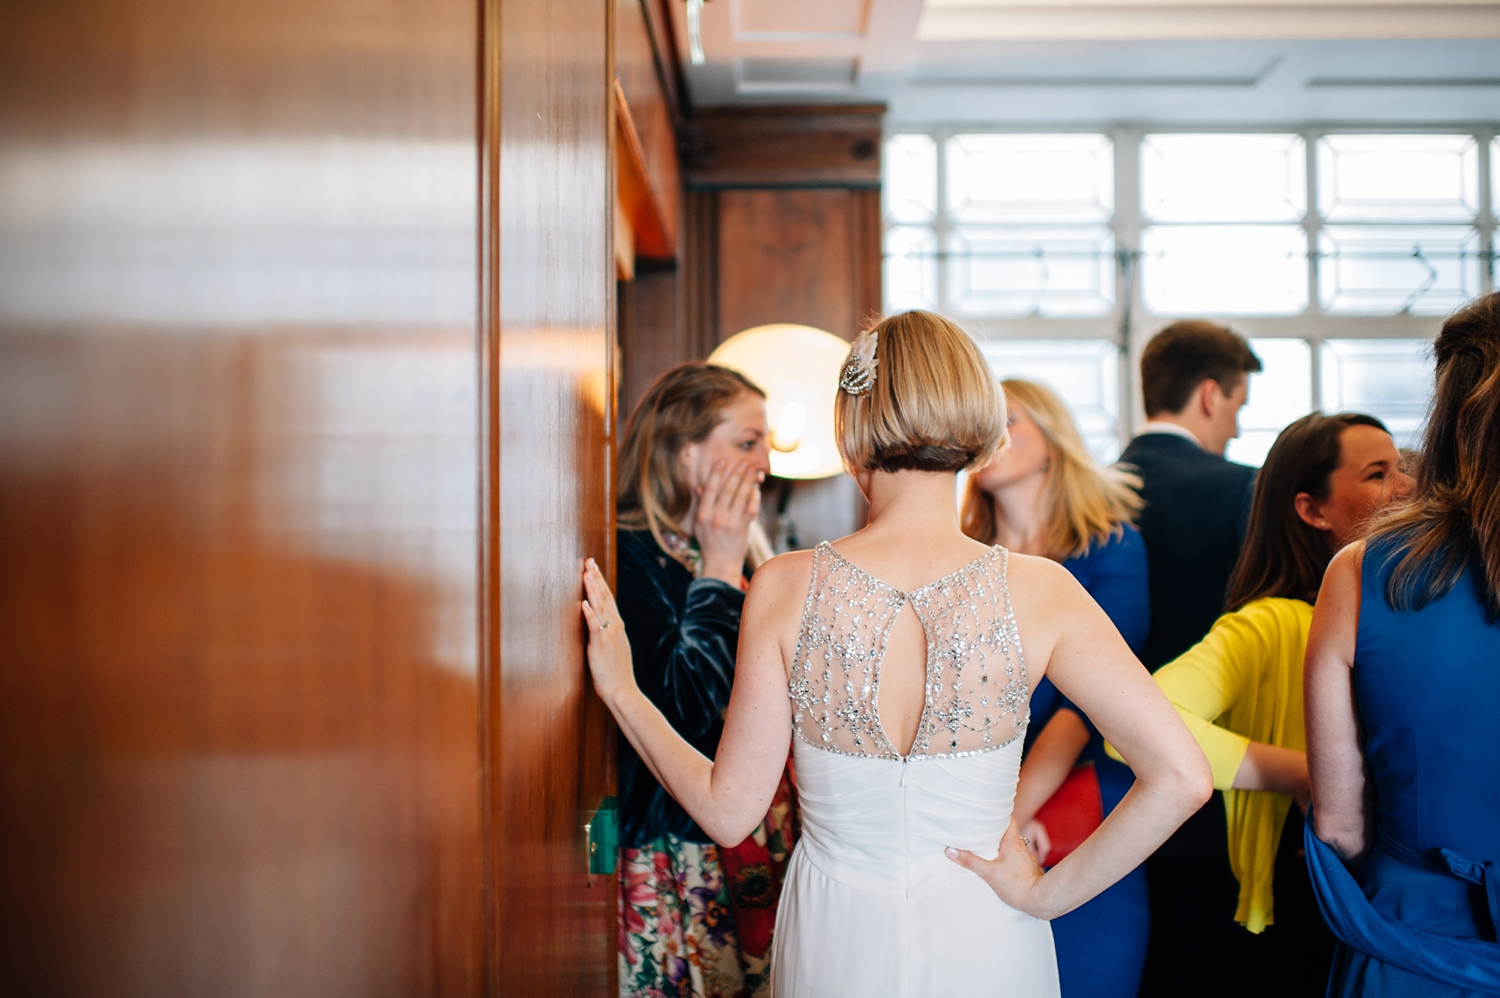 0076-lisa-devine-alternative-wedding-photography-london-hackney-dalston-london-photography-townhall-hotel.JPG